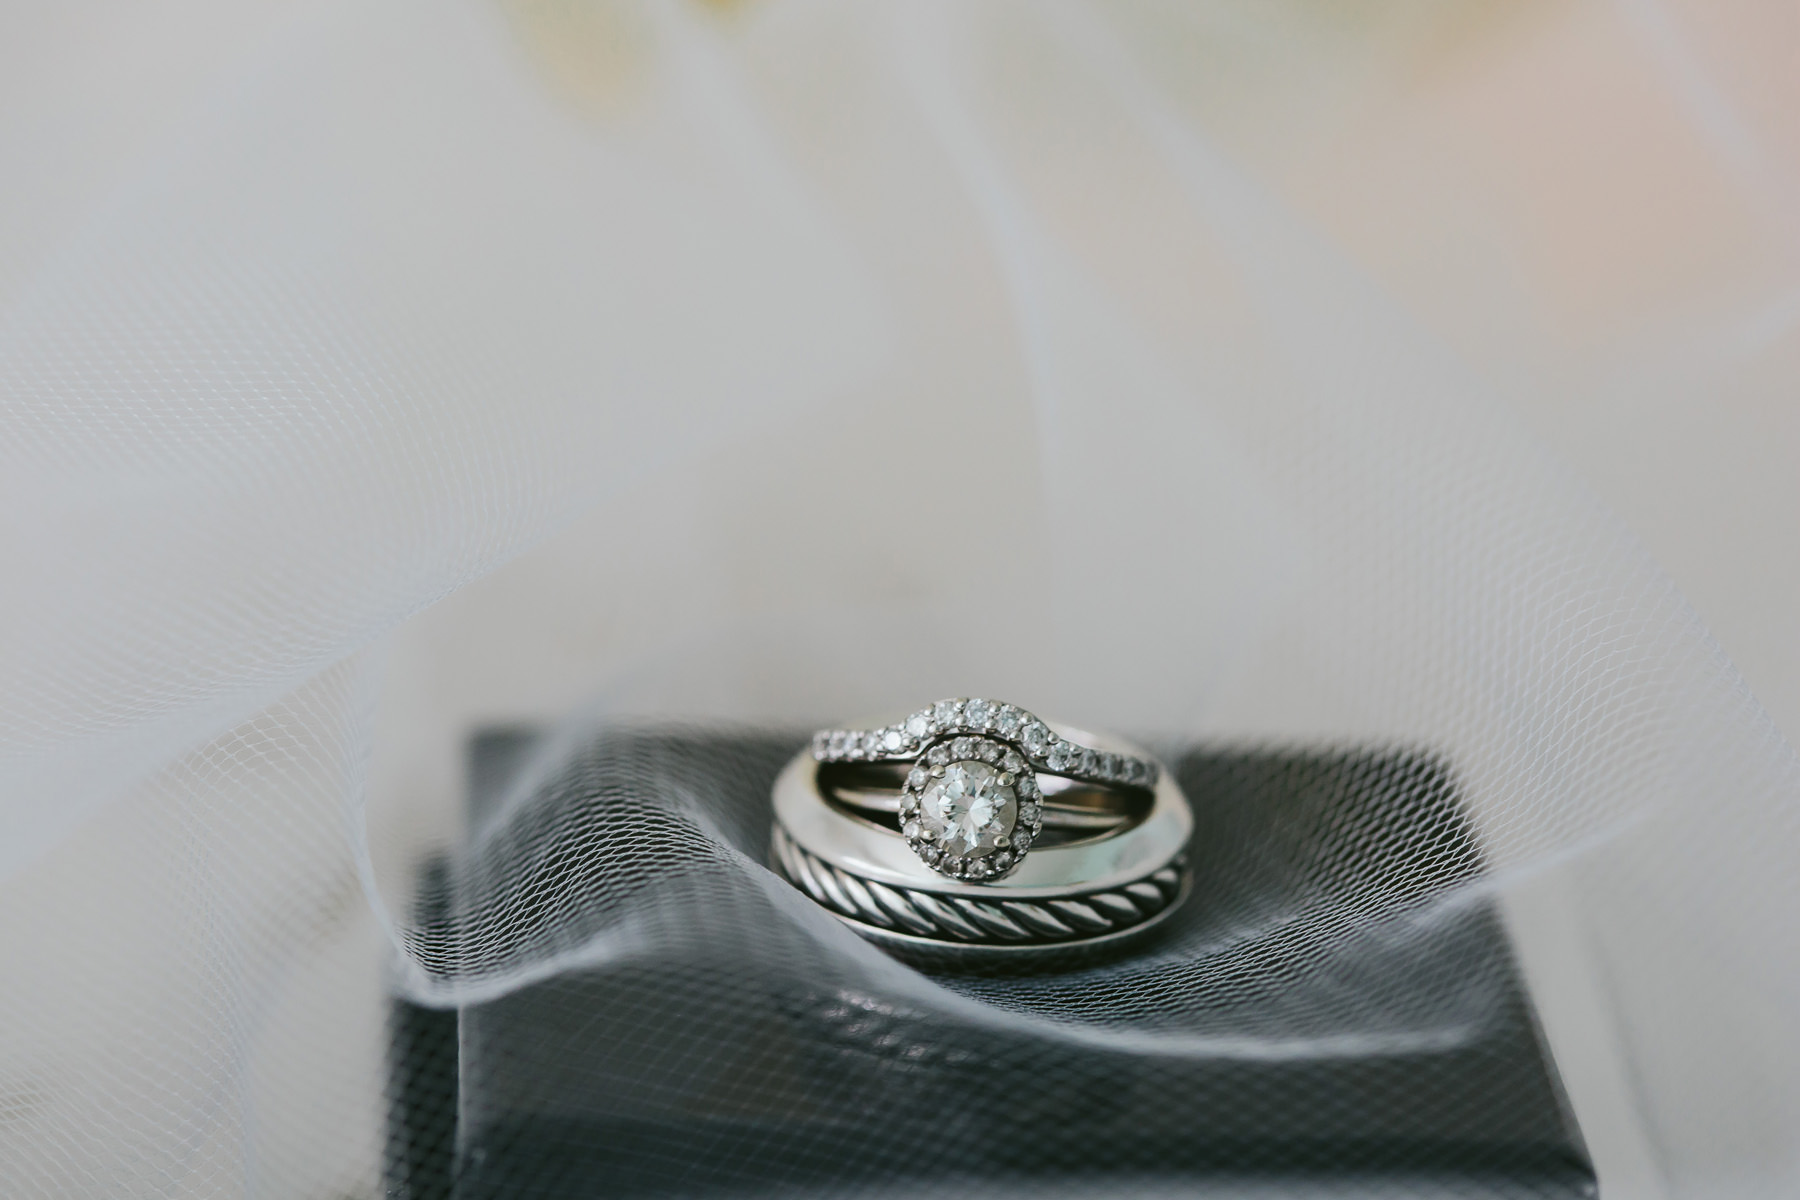 wedding-rings-details-tiny-house-photo-destination-photographer.jpg